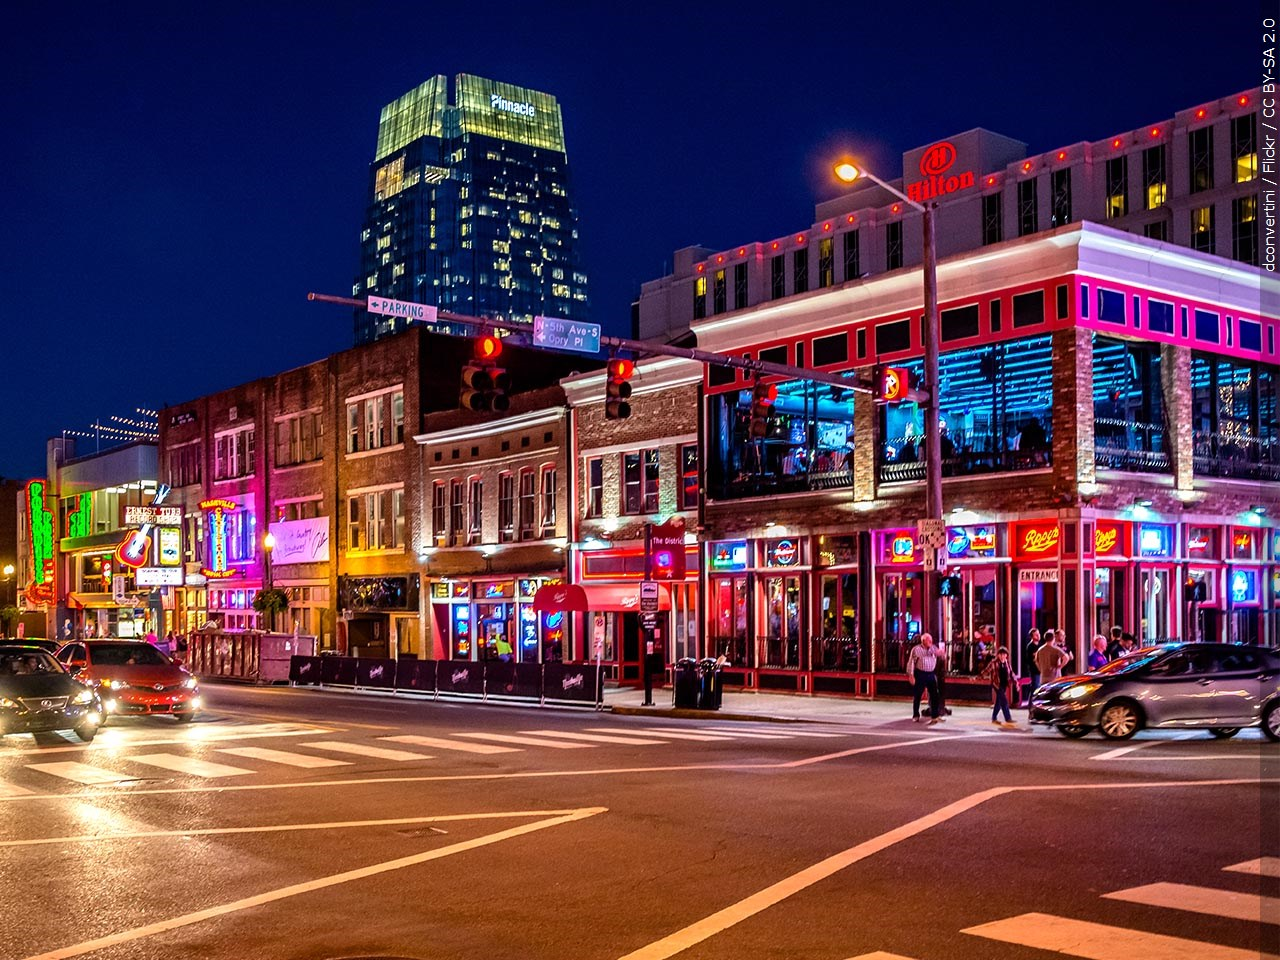 Allegiant Airlines Announces New Seasonal Route from Palm Springs to Nashville